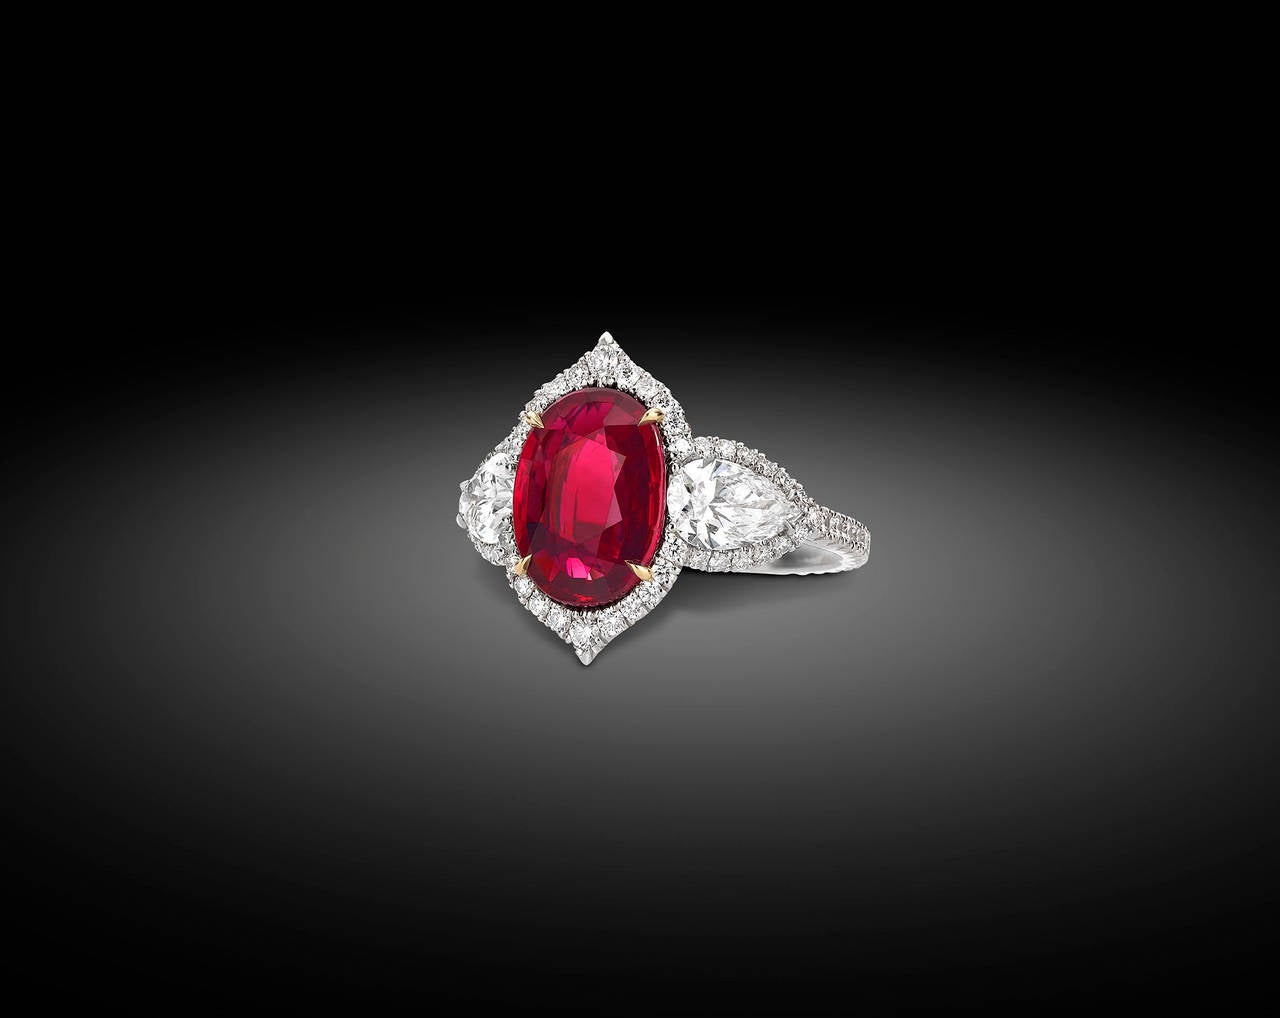 Untreated Ruby and Diamond Ring 3.02 Carats 2